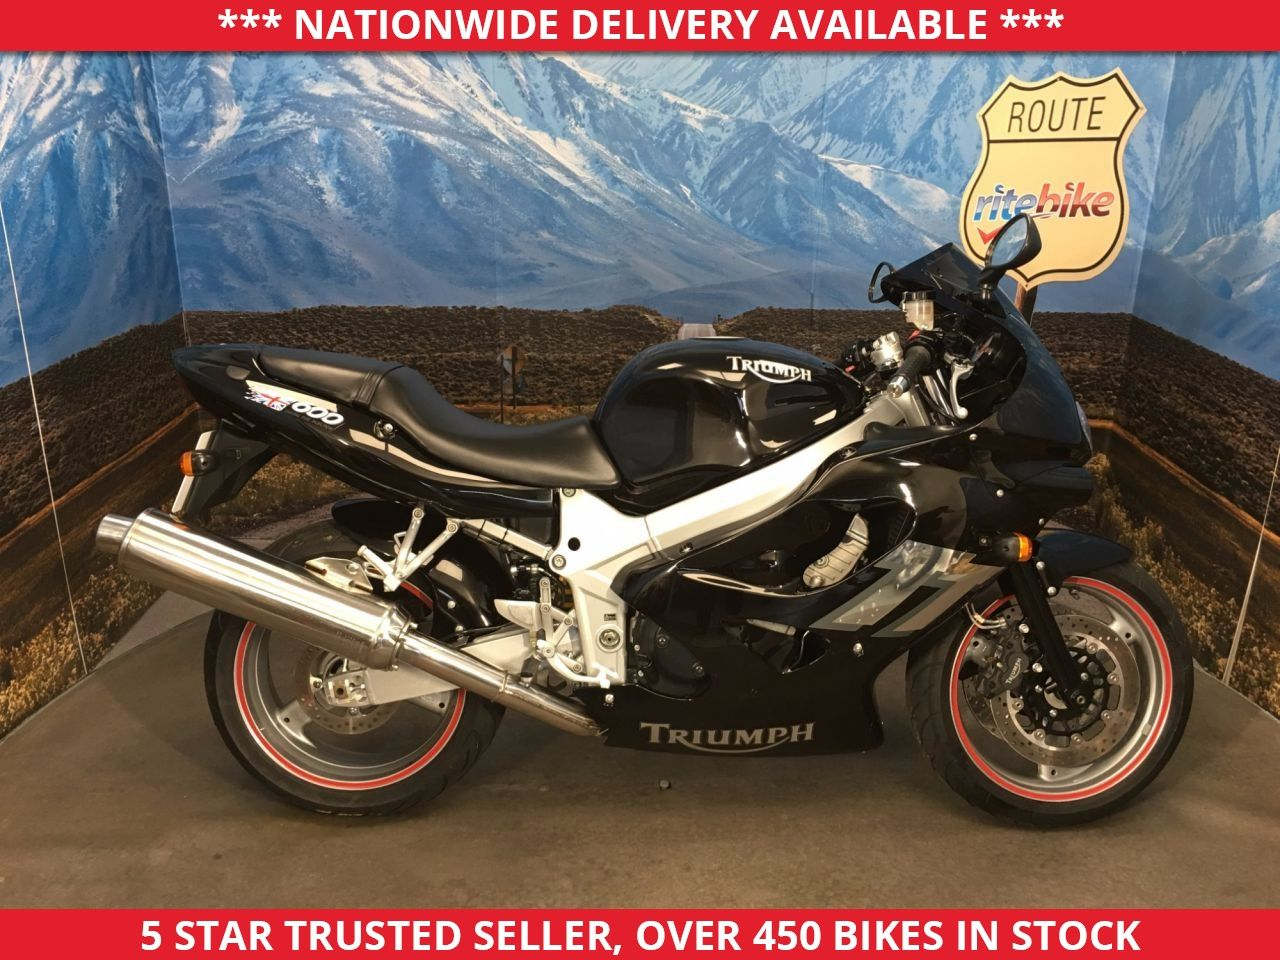 Used Triumph Motorbikes For Sale In Bradford West Yorkshire